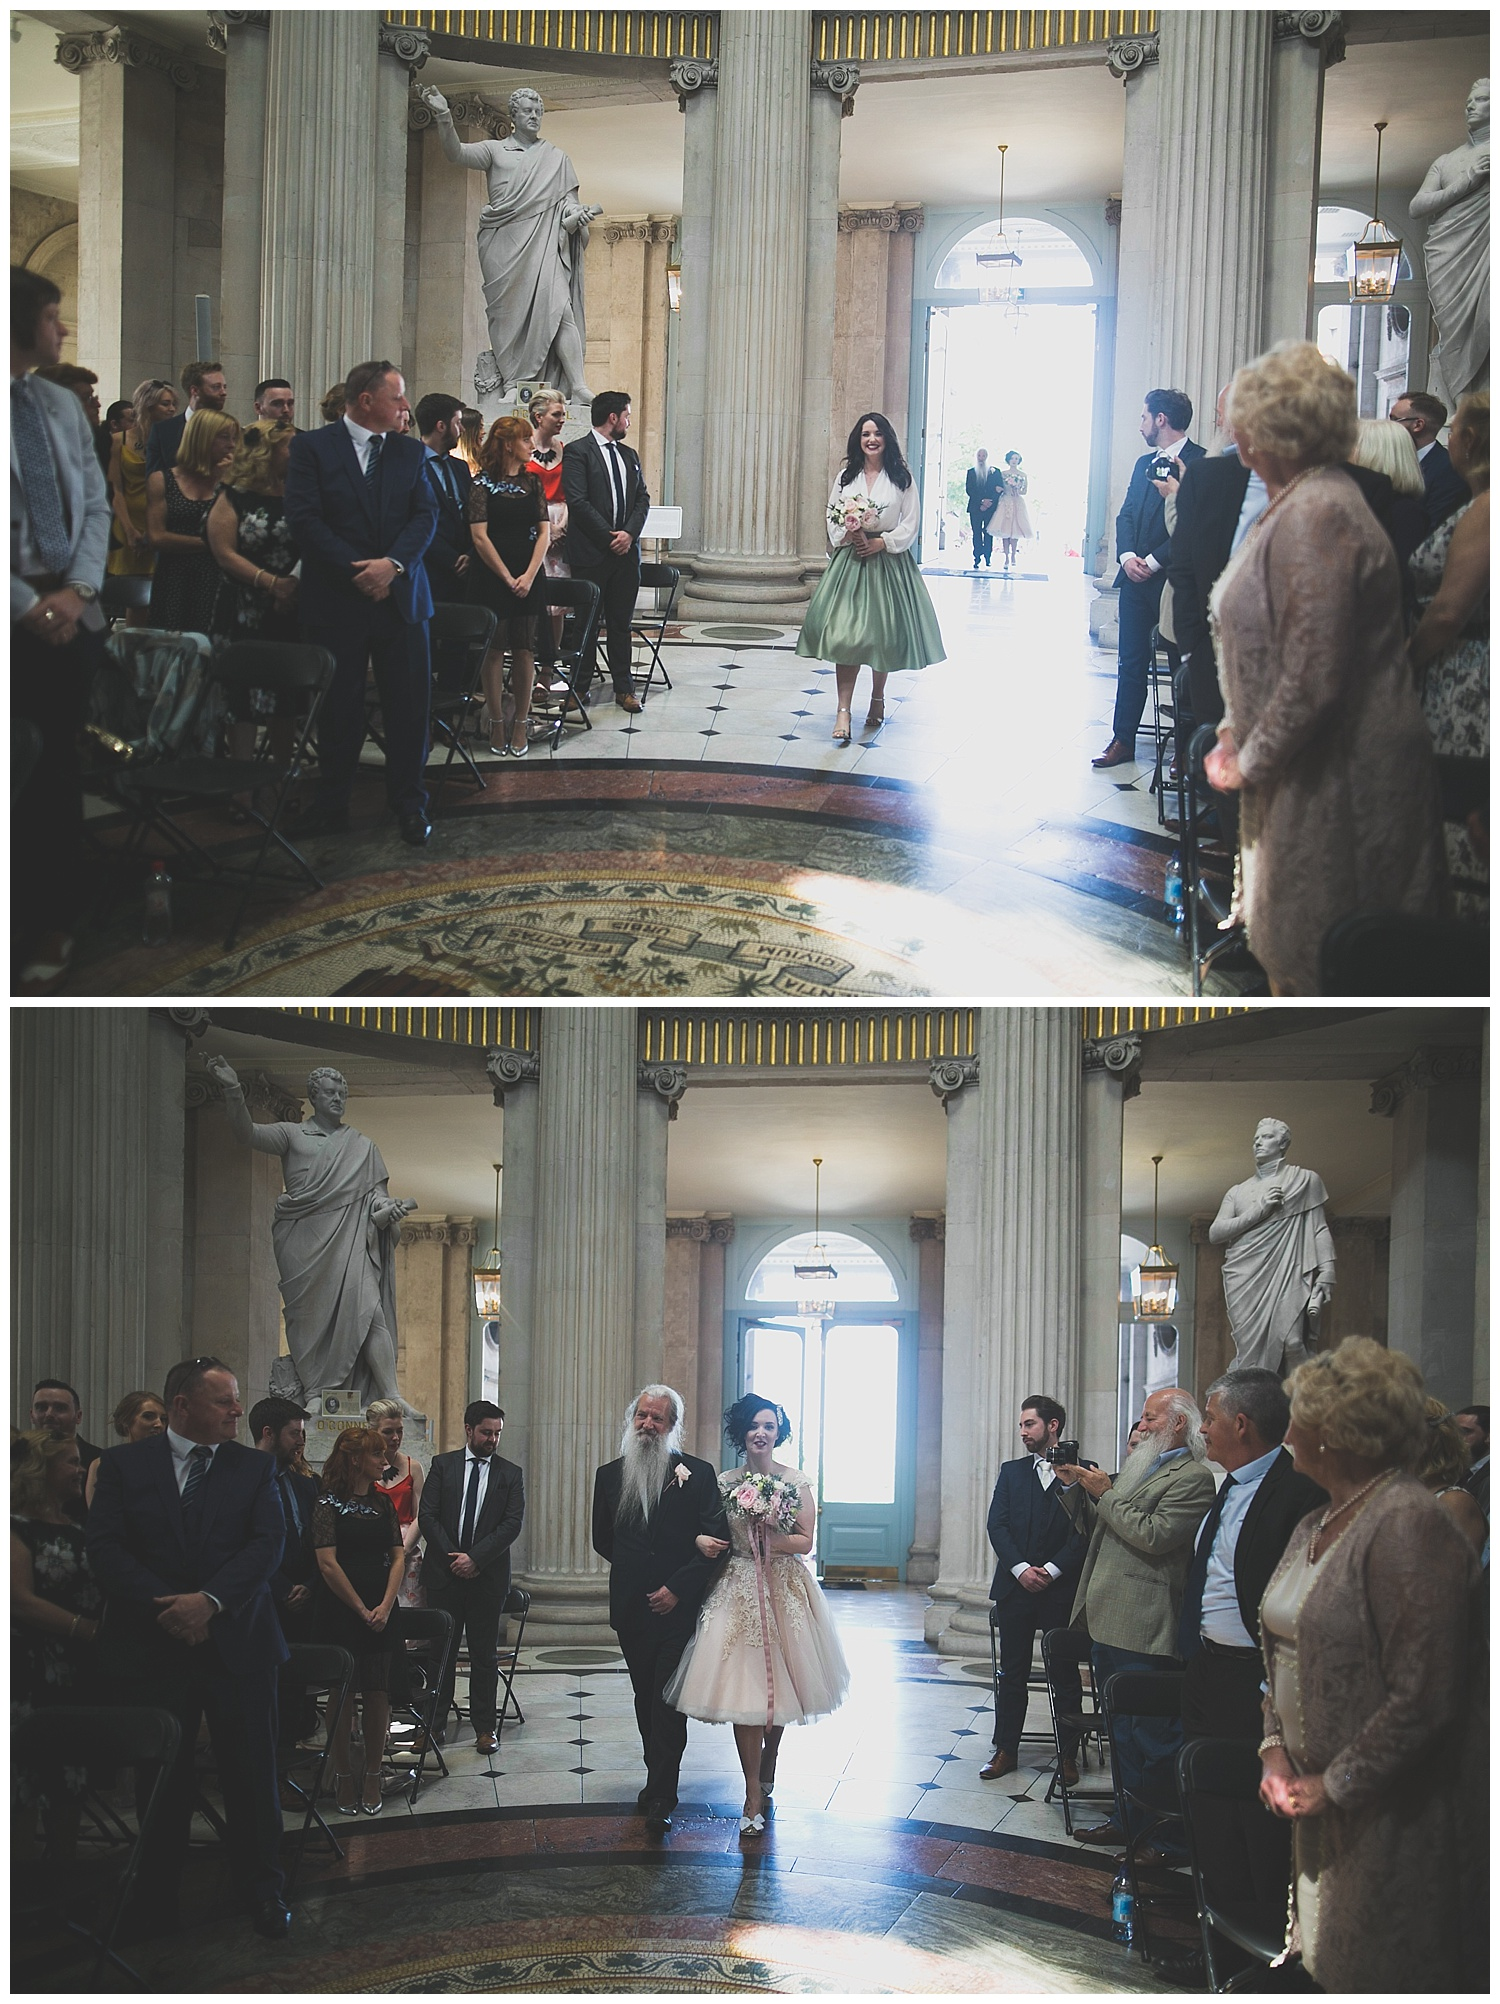 Waking down the aisle in City Hall Dublin, Ireland